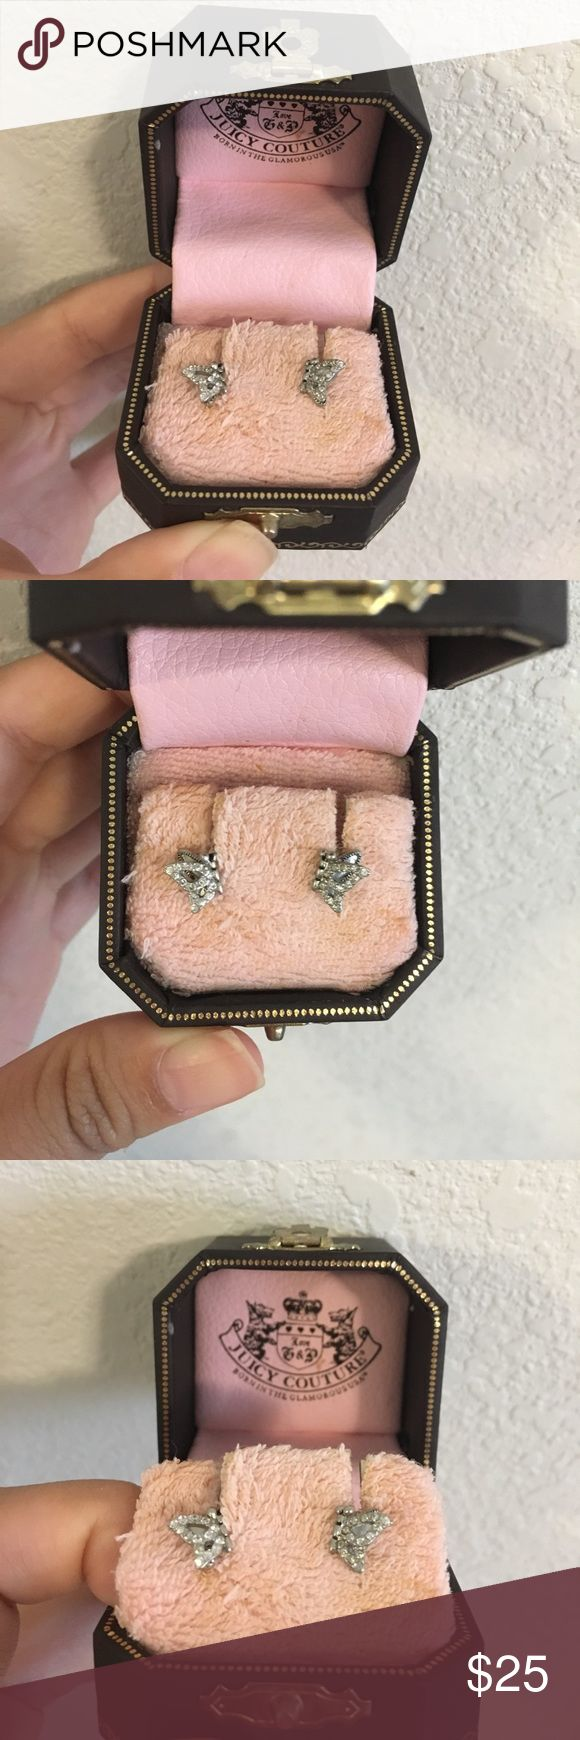 NWOT Juicy Couture Butterfly Stud Earrings Super cute juicy couture butterfly stud earrings. only used this once but i left the case open so the padding got dirty. Earrings are in great condition, no rust or anything, they actually don't rust if exposed to water or dust 😊 Juicy Couture Jewelry Earrings